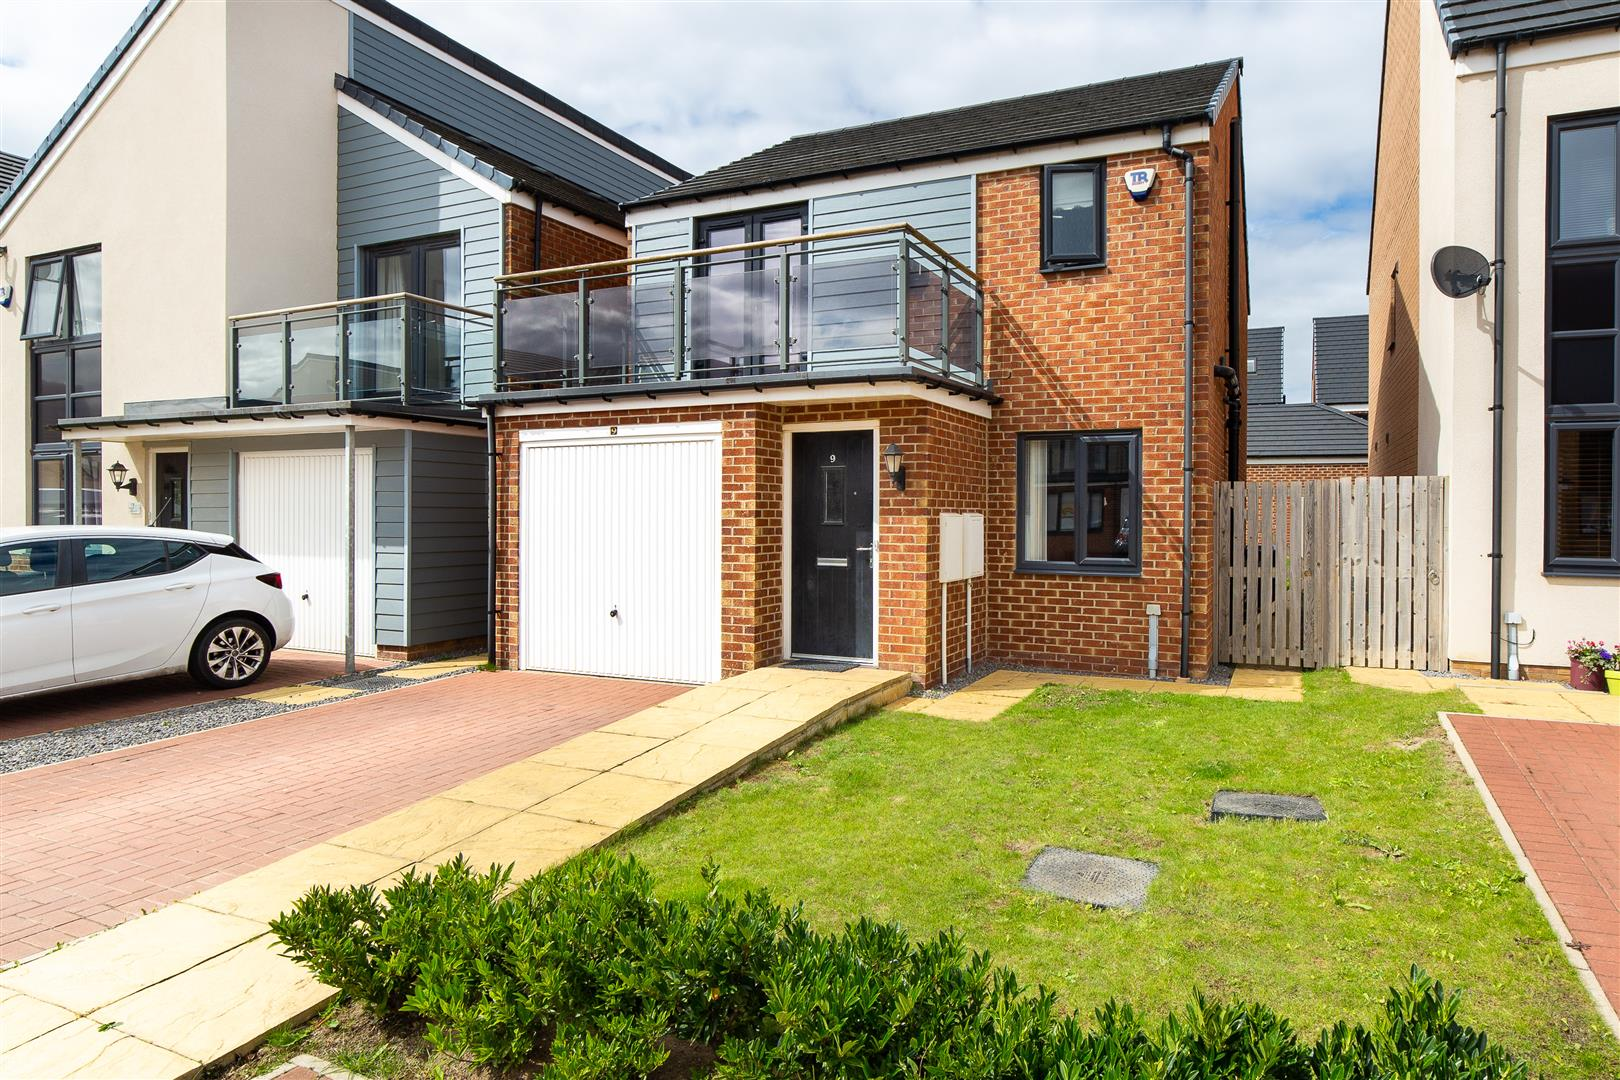 3 bed detached house for sale in Newcastle Upon Tyne, NE13 9DB - Property Image 1